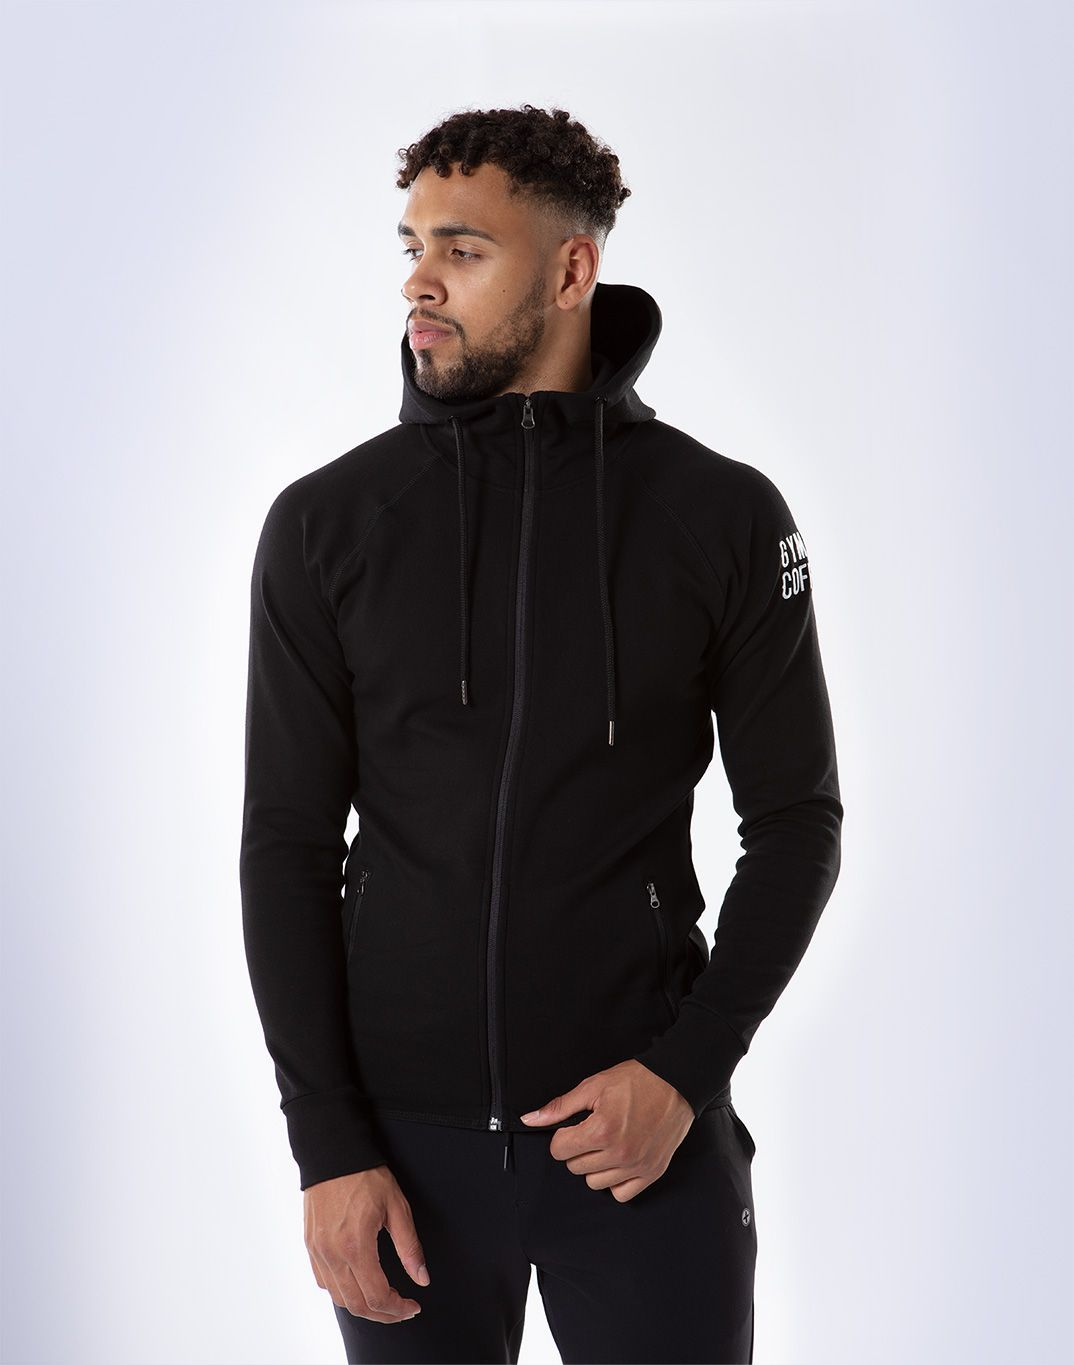 Gym Plus Coffee Hoodie Men's Chill Hoodie in Black Designed in Ireland